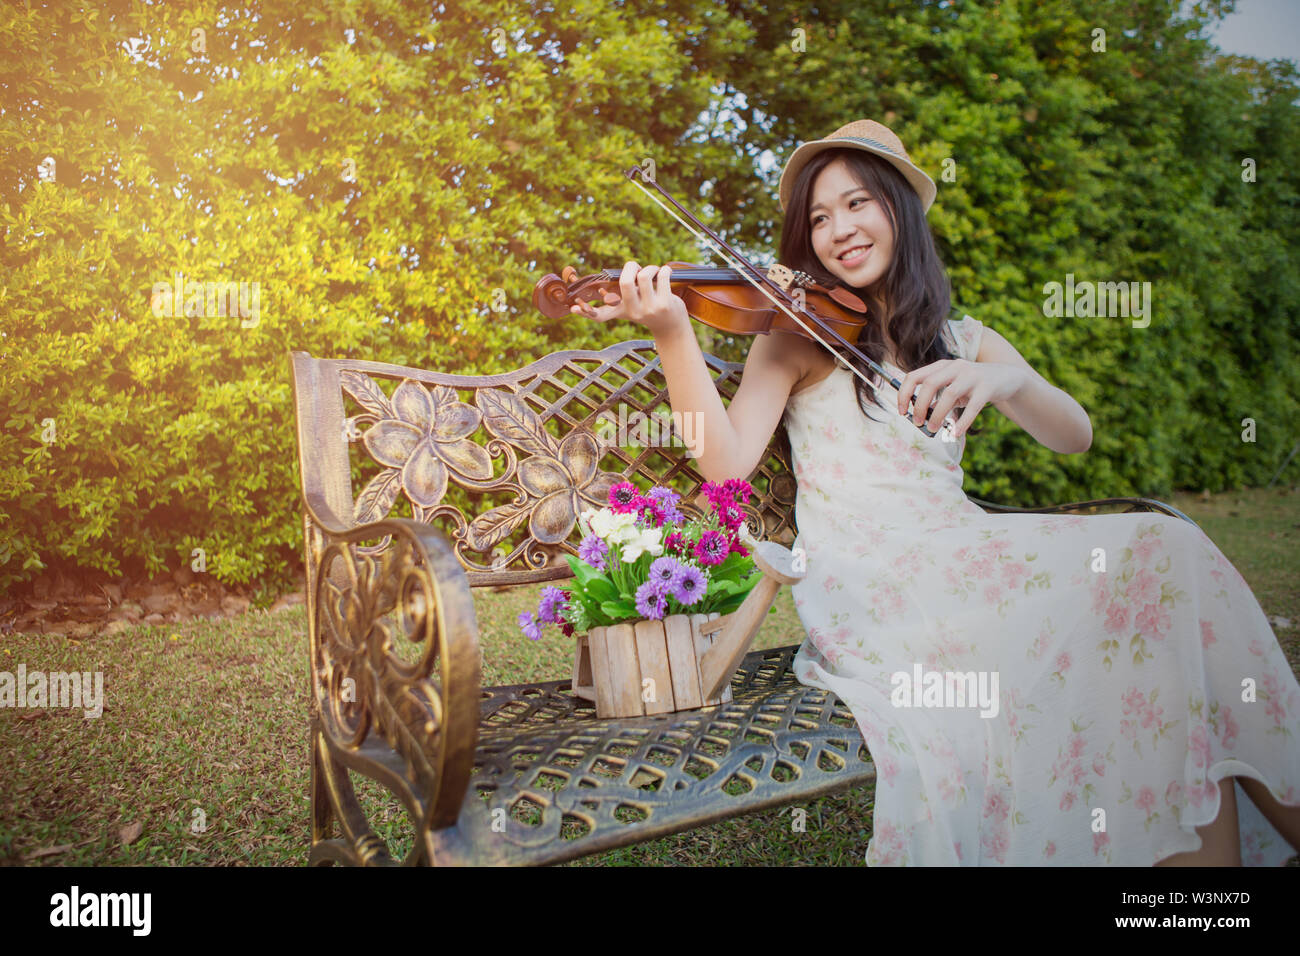 asia woman playing violin in garden - Stock Image